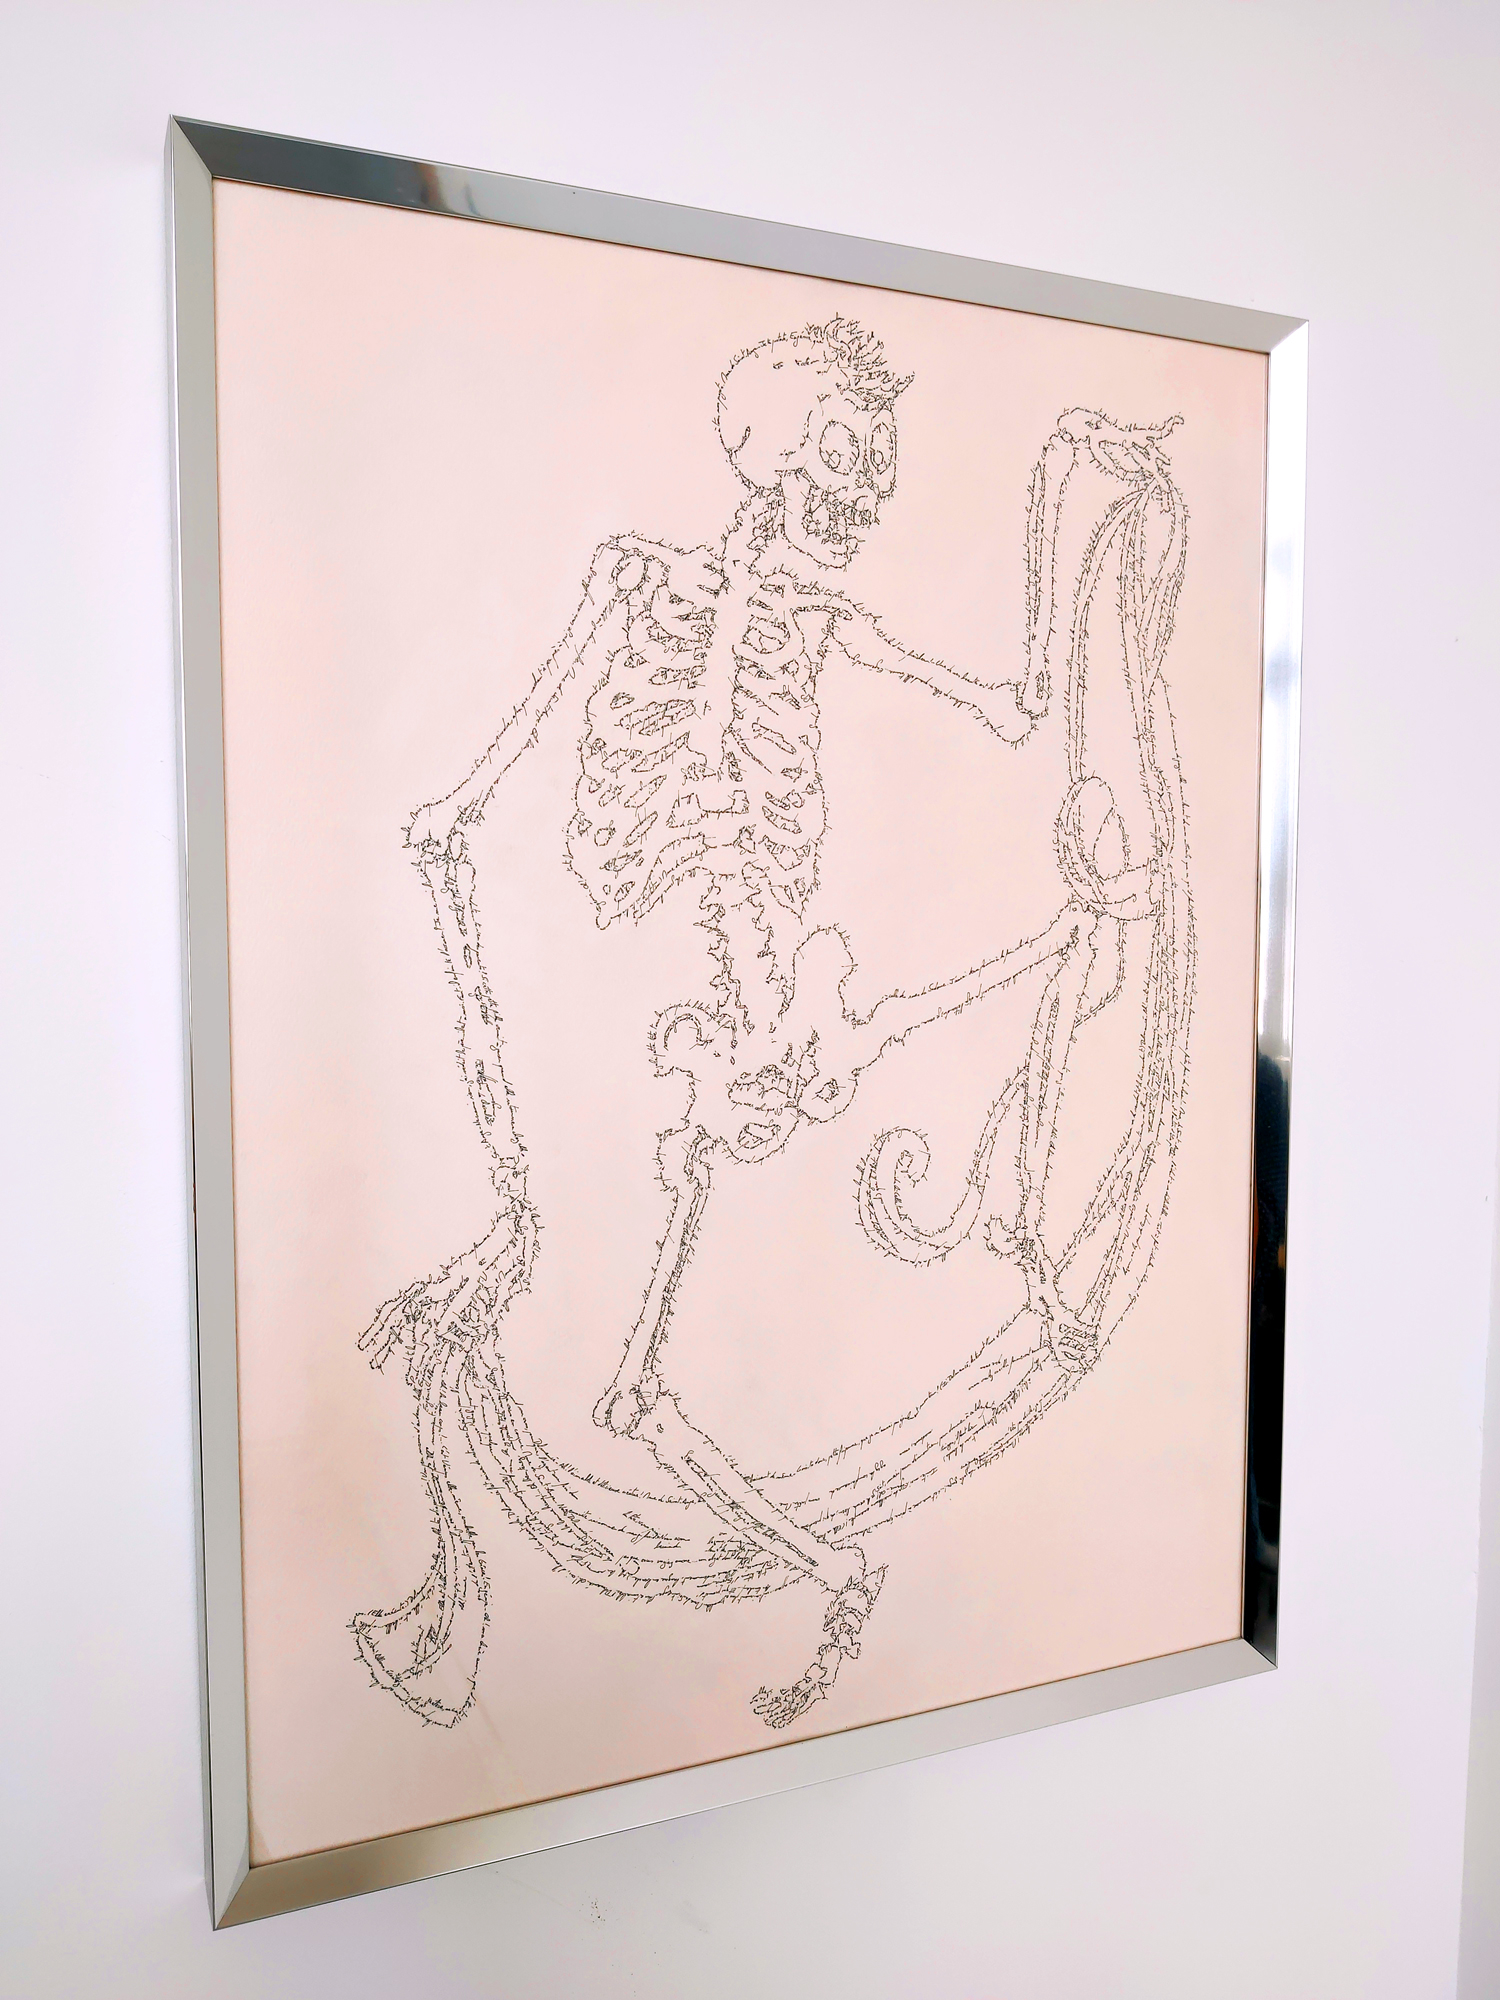 Mad skeleton with a stole (Philosophy in the Bedroom), Marc Molk, 2016, Calligram, Indian ink on paper, 25,5 x 19,5 in